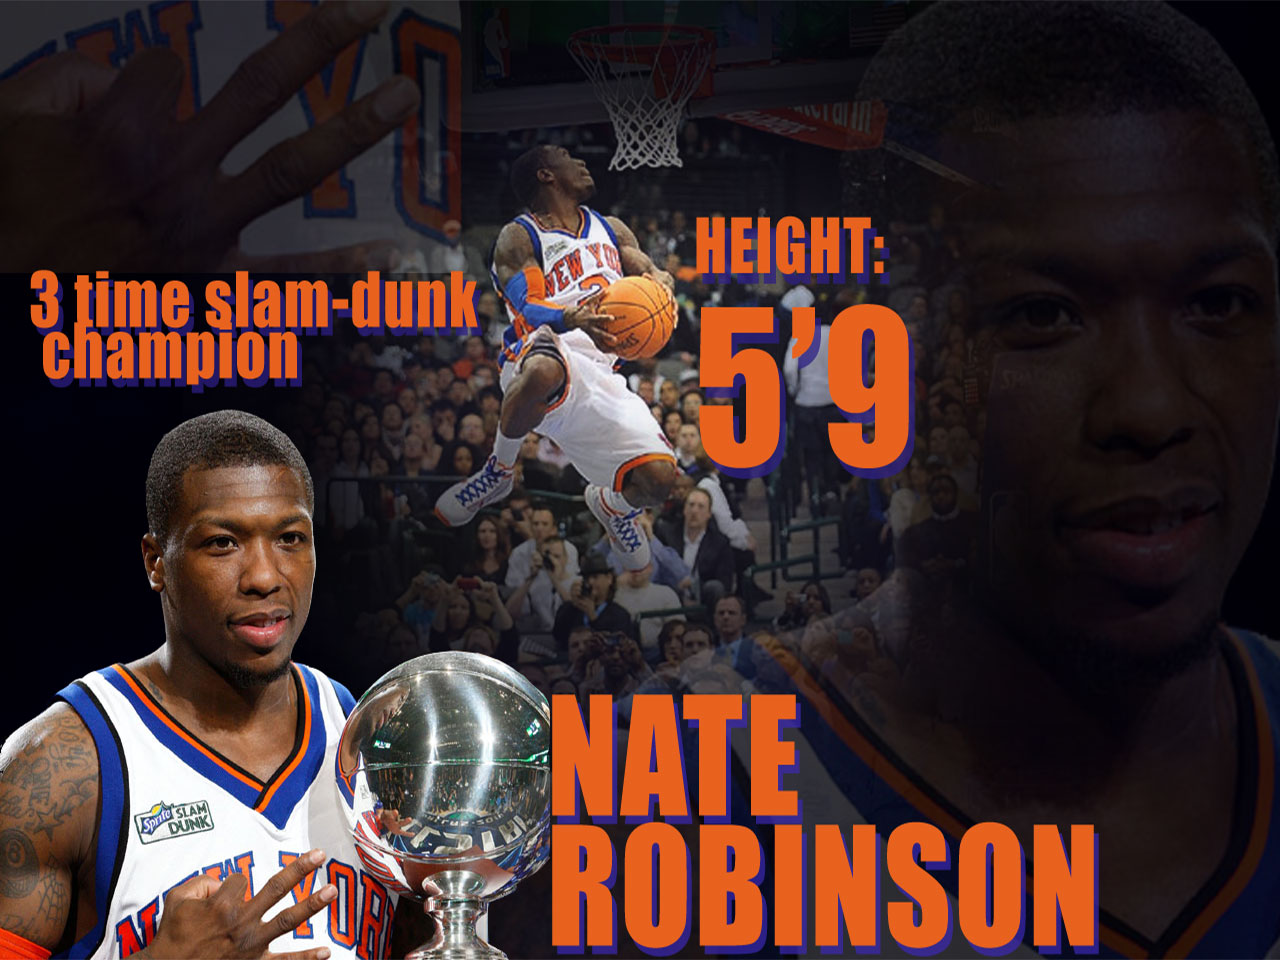 Nate Robinson 3-Time Slam Dunk Champ